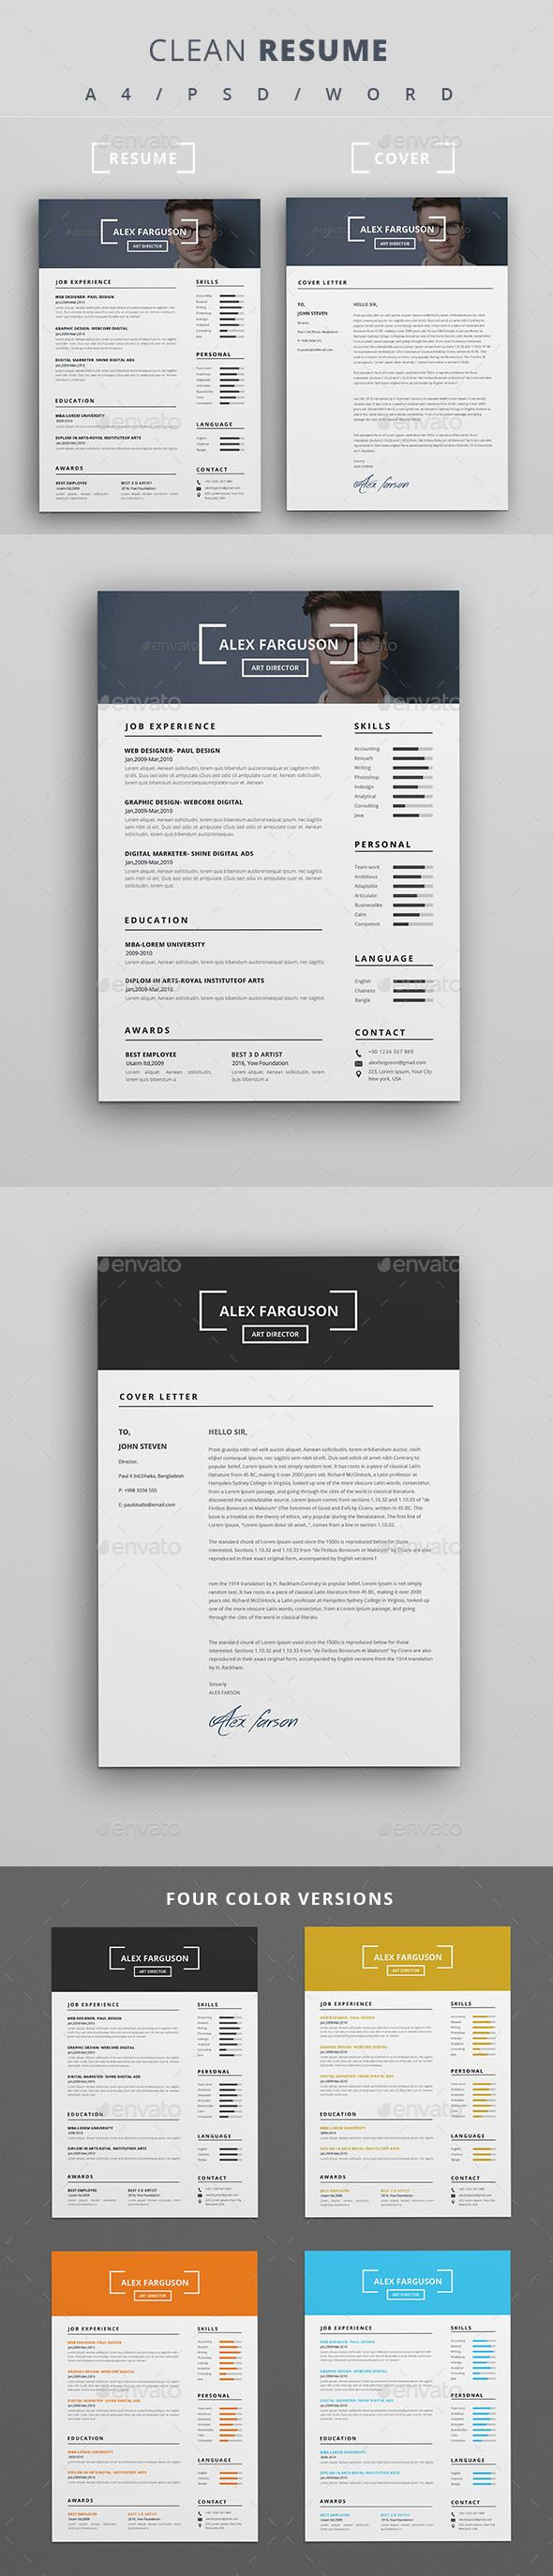 Beautiful 1 Hexagon Template Small 1 Page Resume Template Round 10 Off Coupon Template 10 Steps To Creating A Resume Old 10 Tips For A Great Resume Black100 Free Resume 25  Best Resume Ideas On Pinterest | Resume, Resume Builder ..